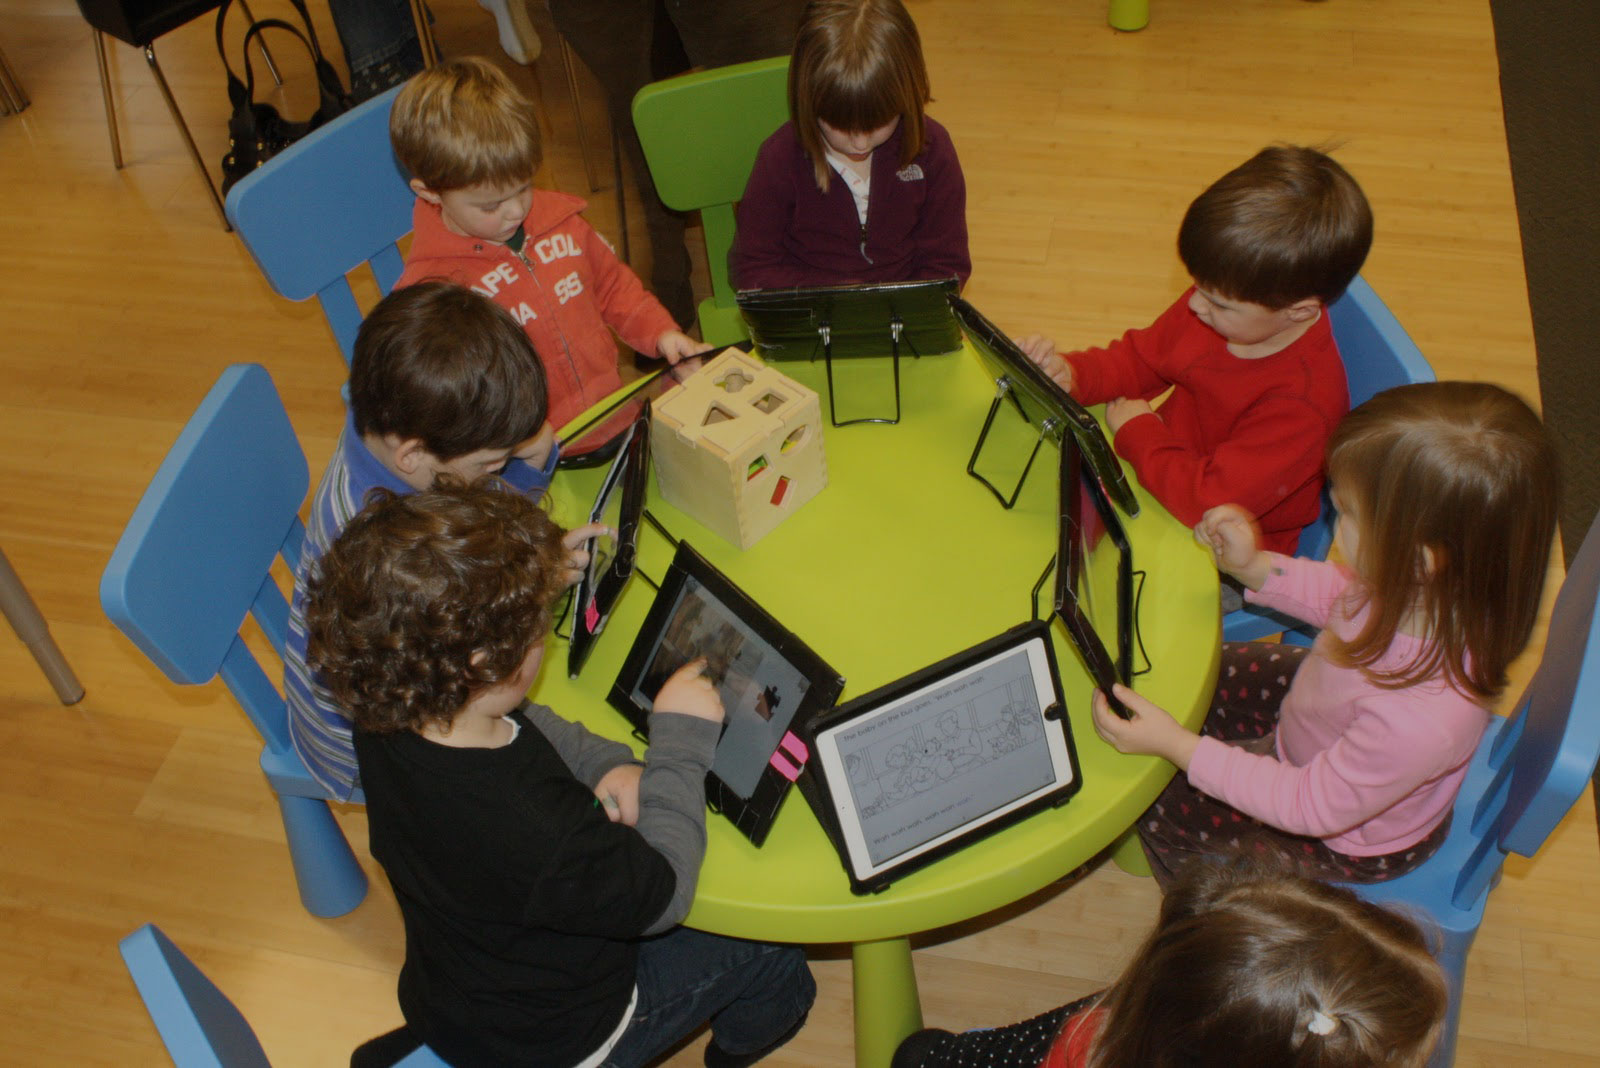 technology in the classroom Why is it important to use technology in the classroom students interact with technology while off the campus, so integrating this technology into classrooms will.